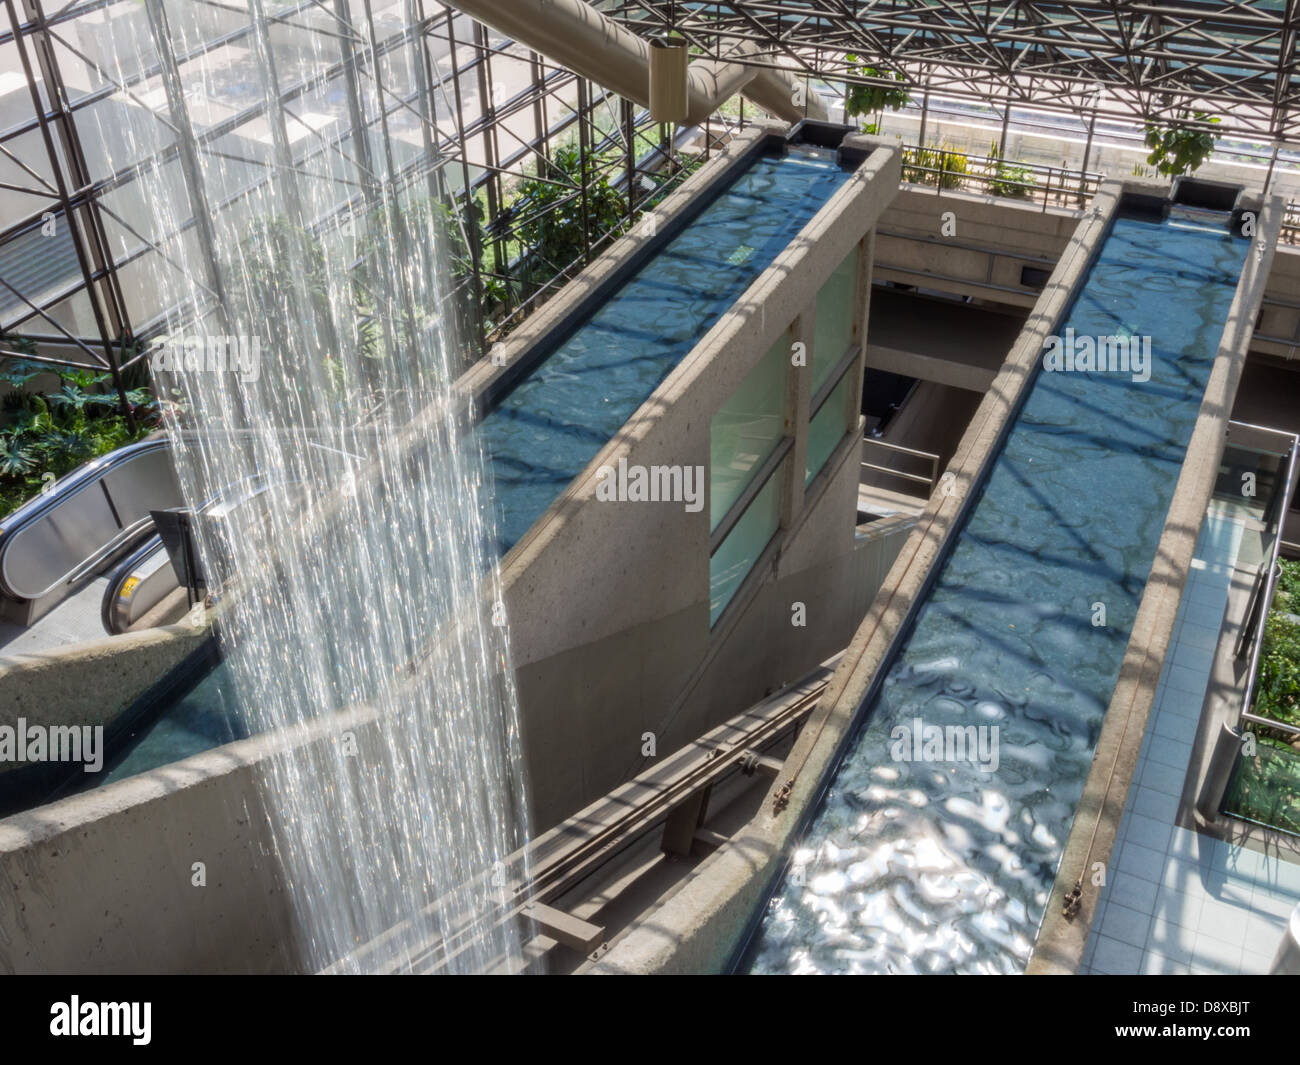 Stock Photo - indoor waterfall in Shaw conference centre in Edmonton